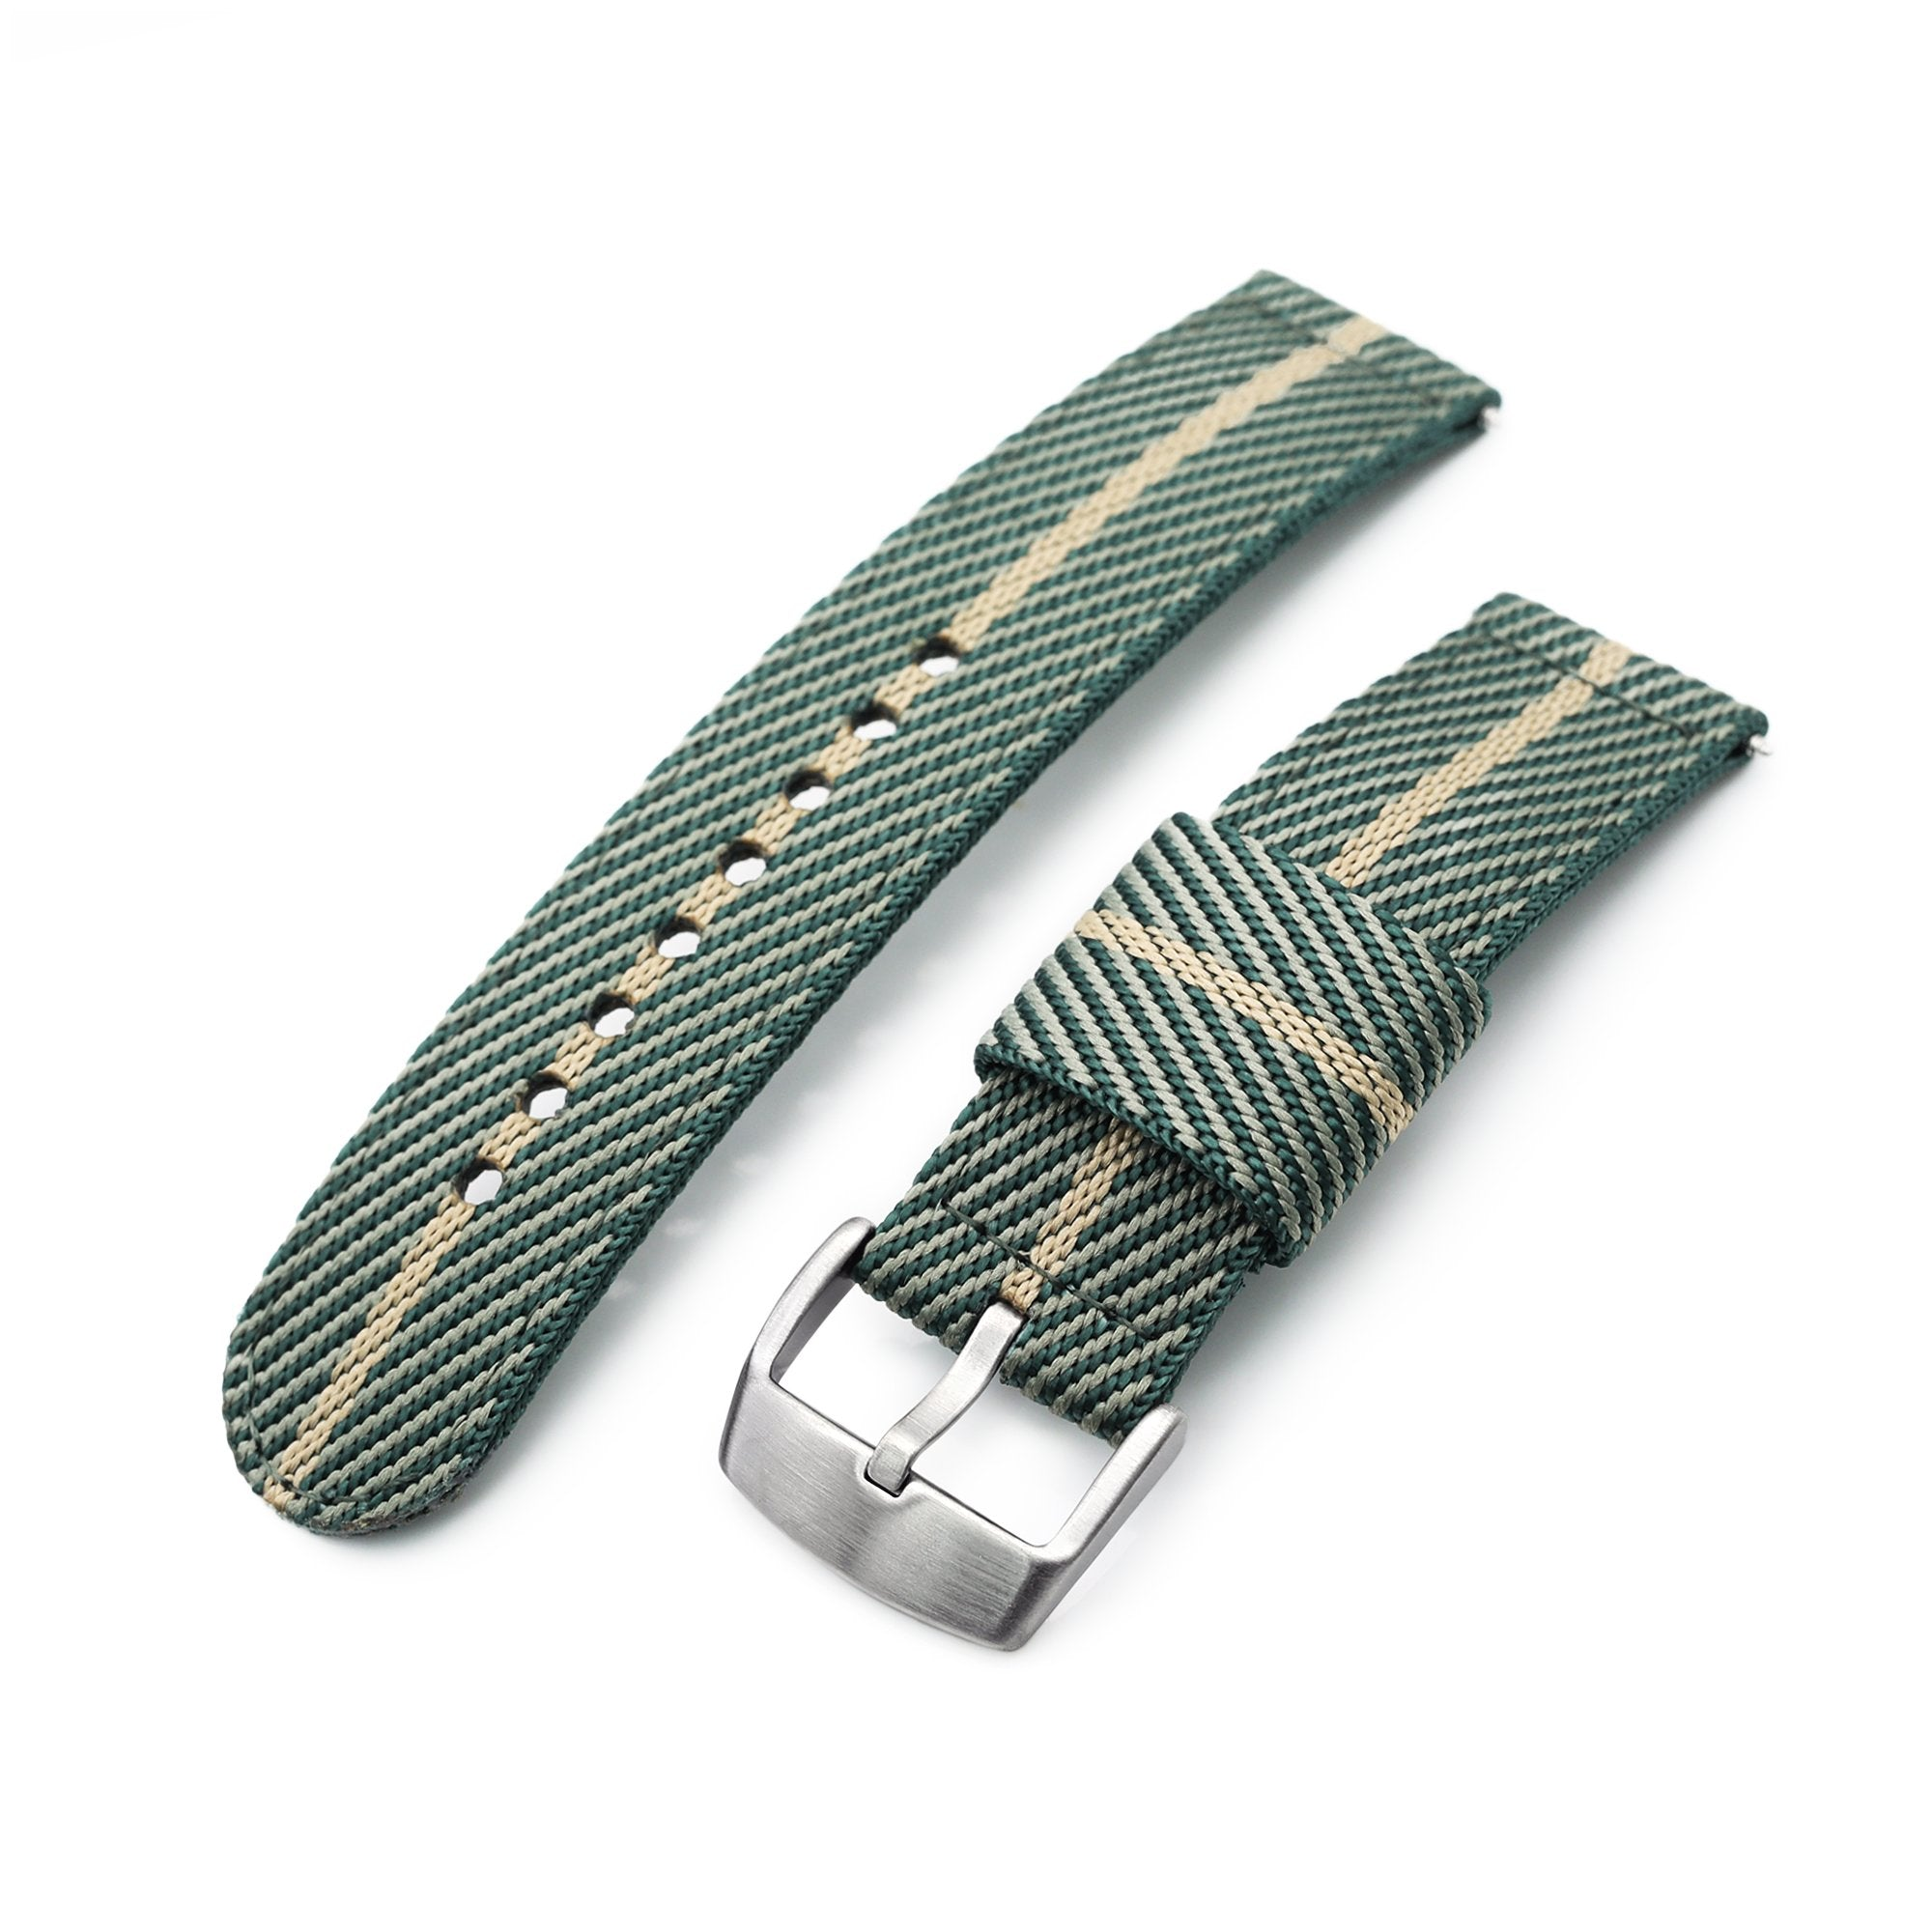 22mm 2-pcs Nylon Watch Band, Quick Release, Green & Khaki, Brushed Buckle Strapcode Watch Bands